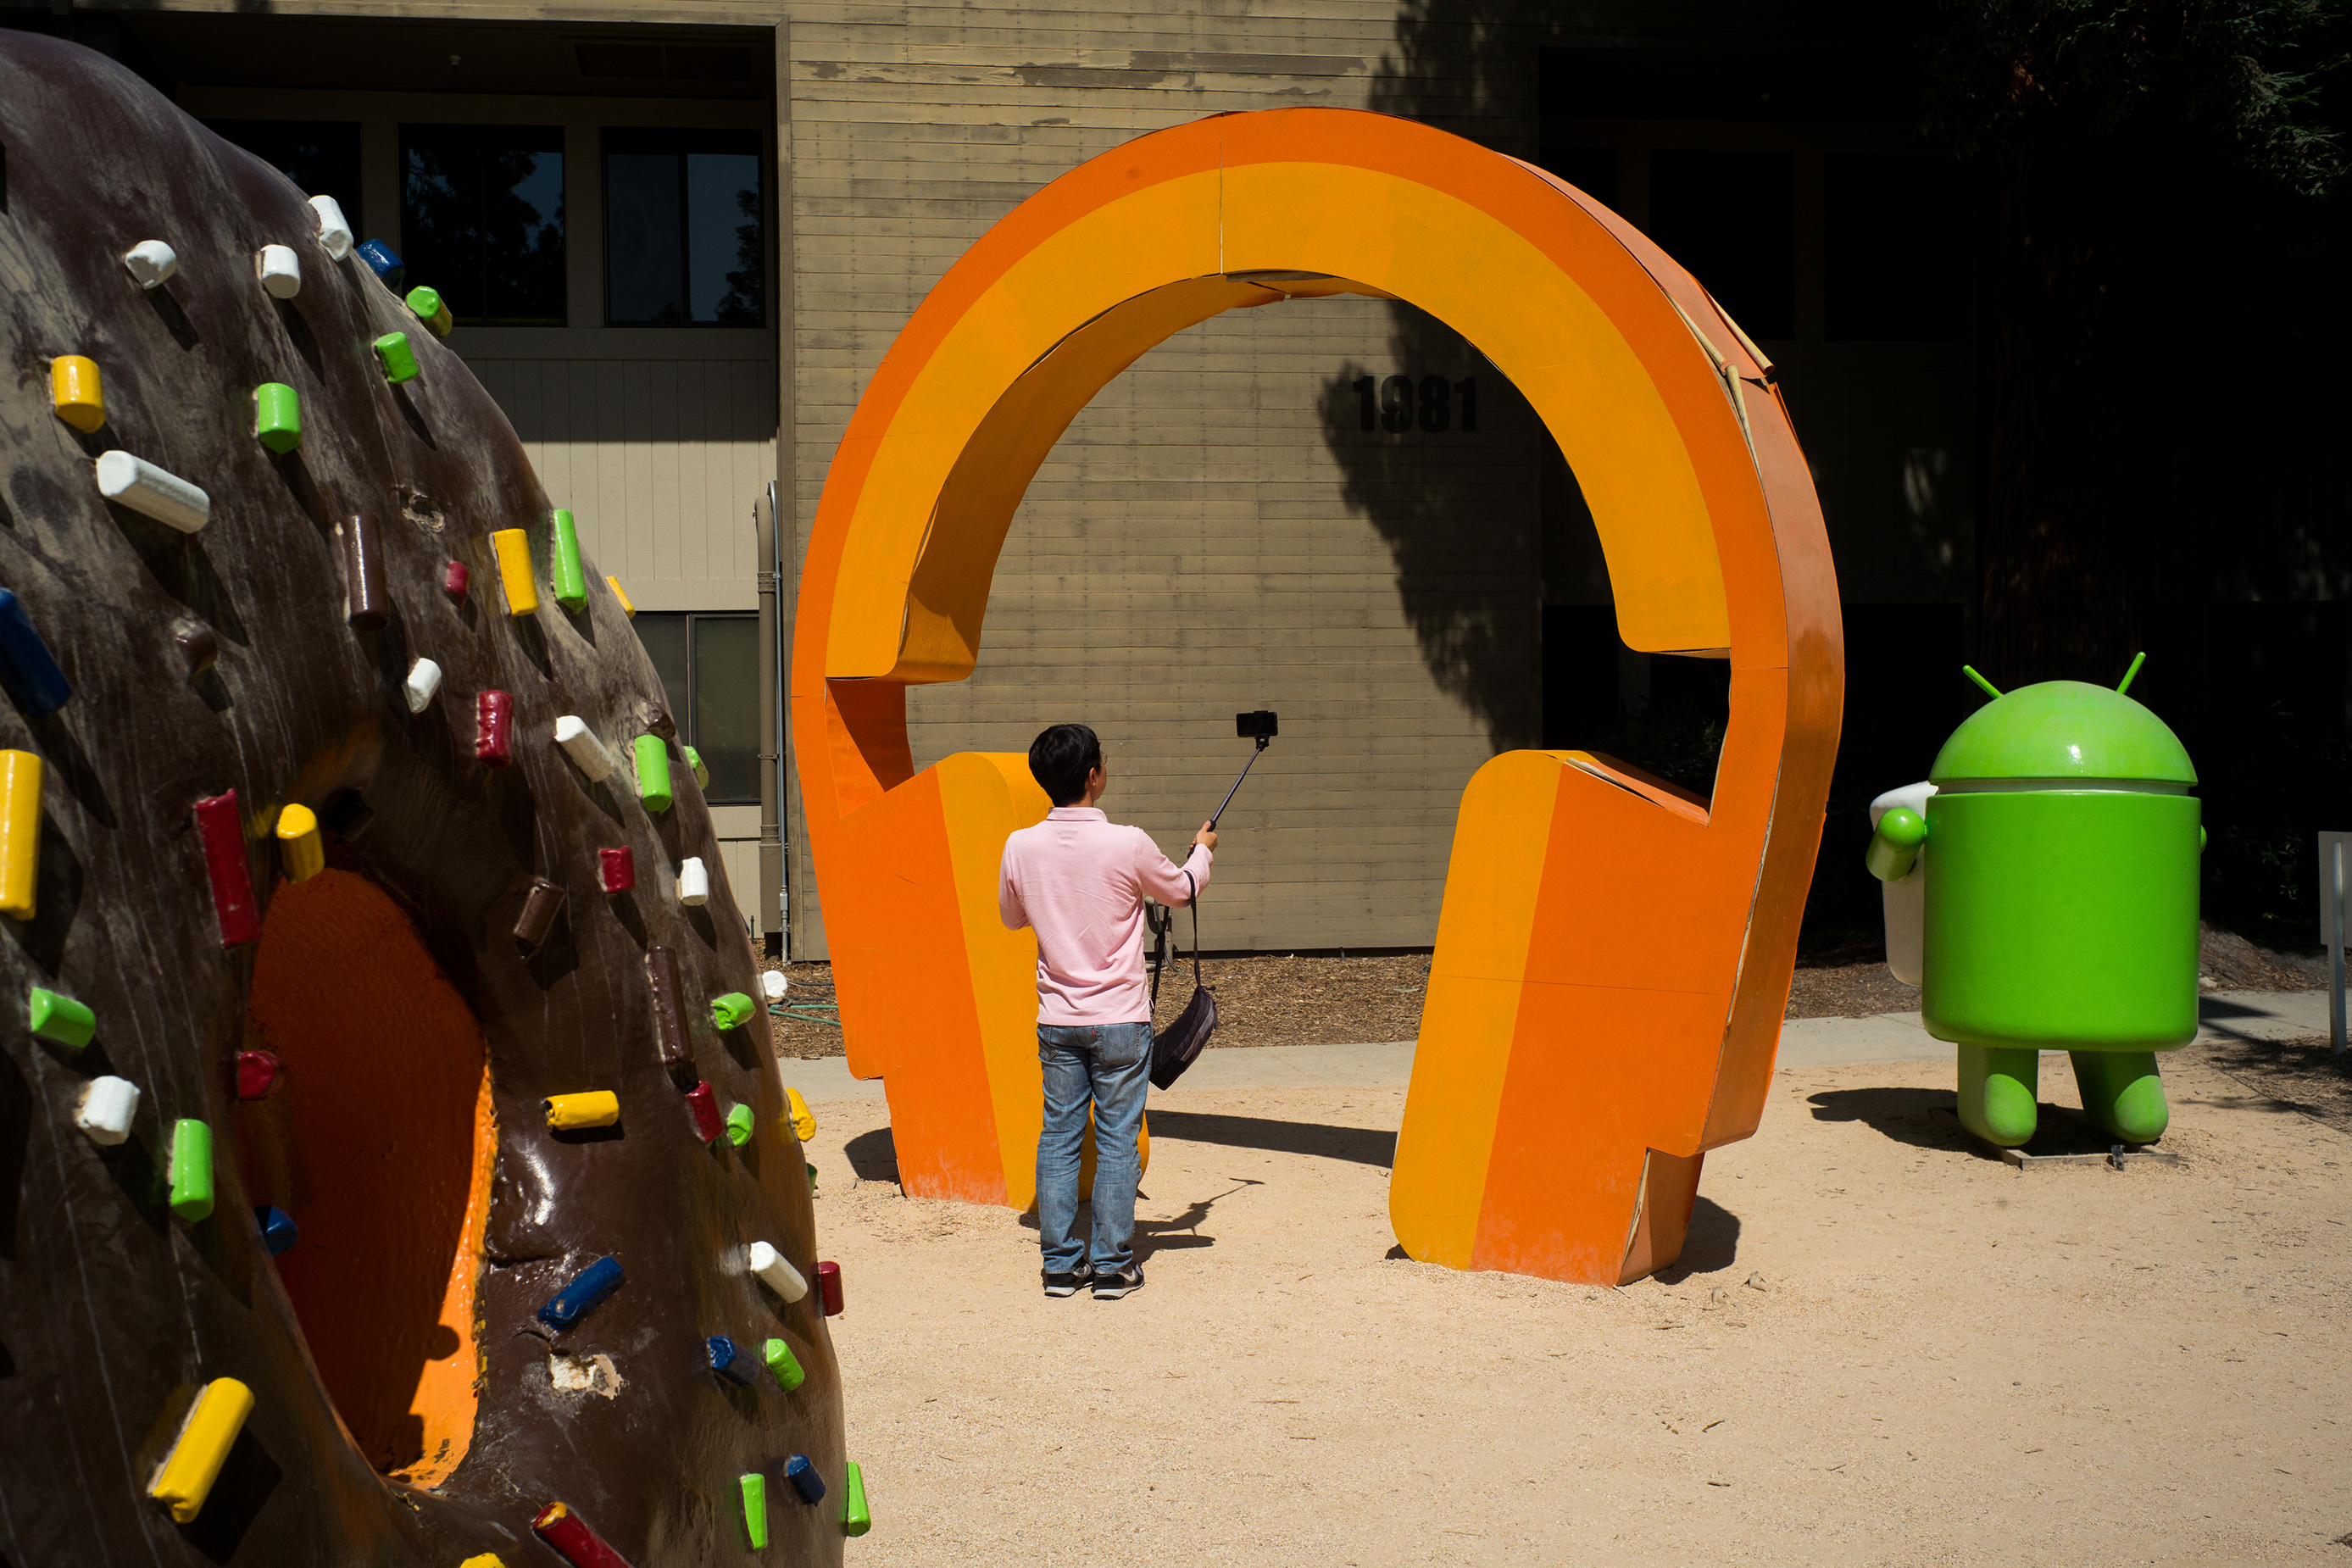 Silicon Valley Has Its Tech Campuses. Now It Wants A Monument